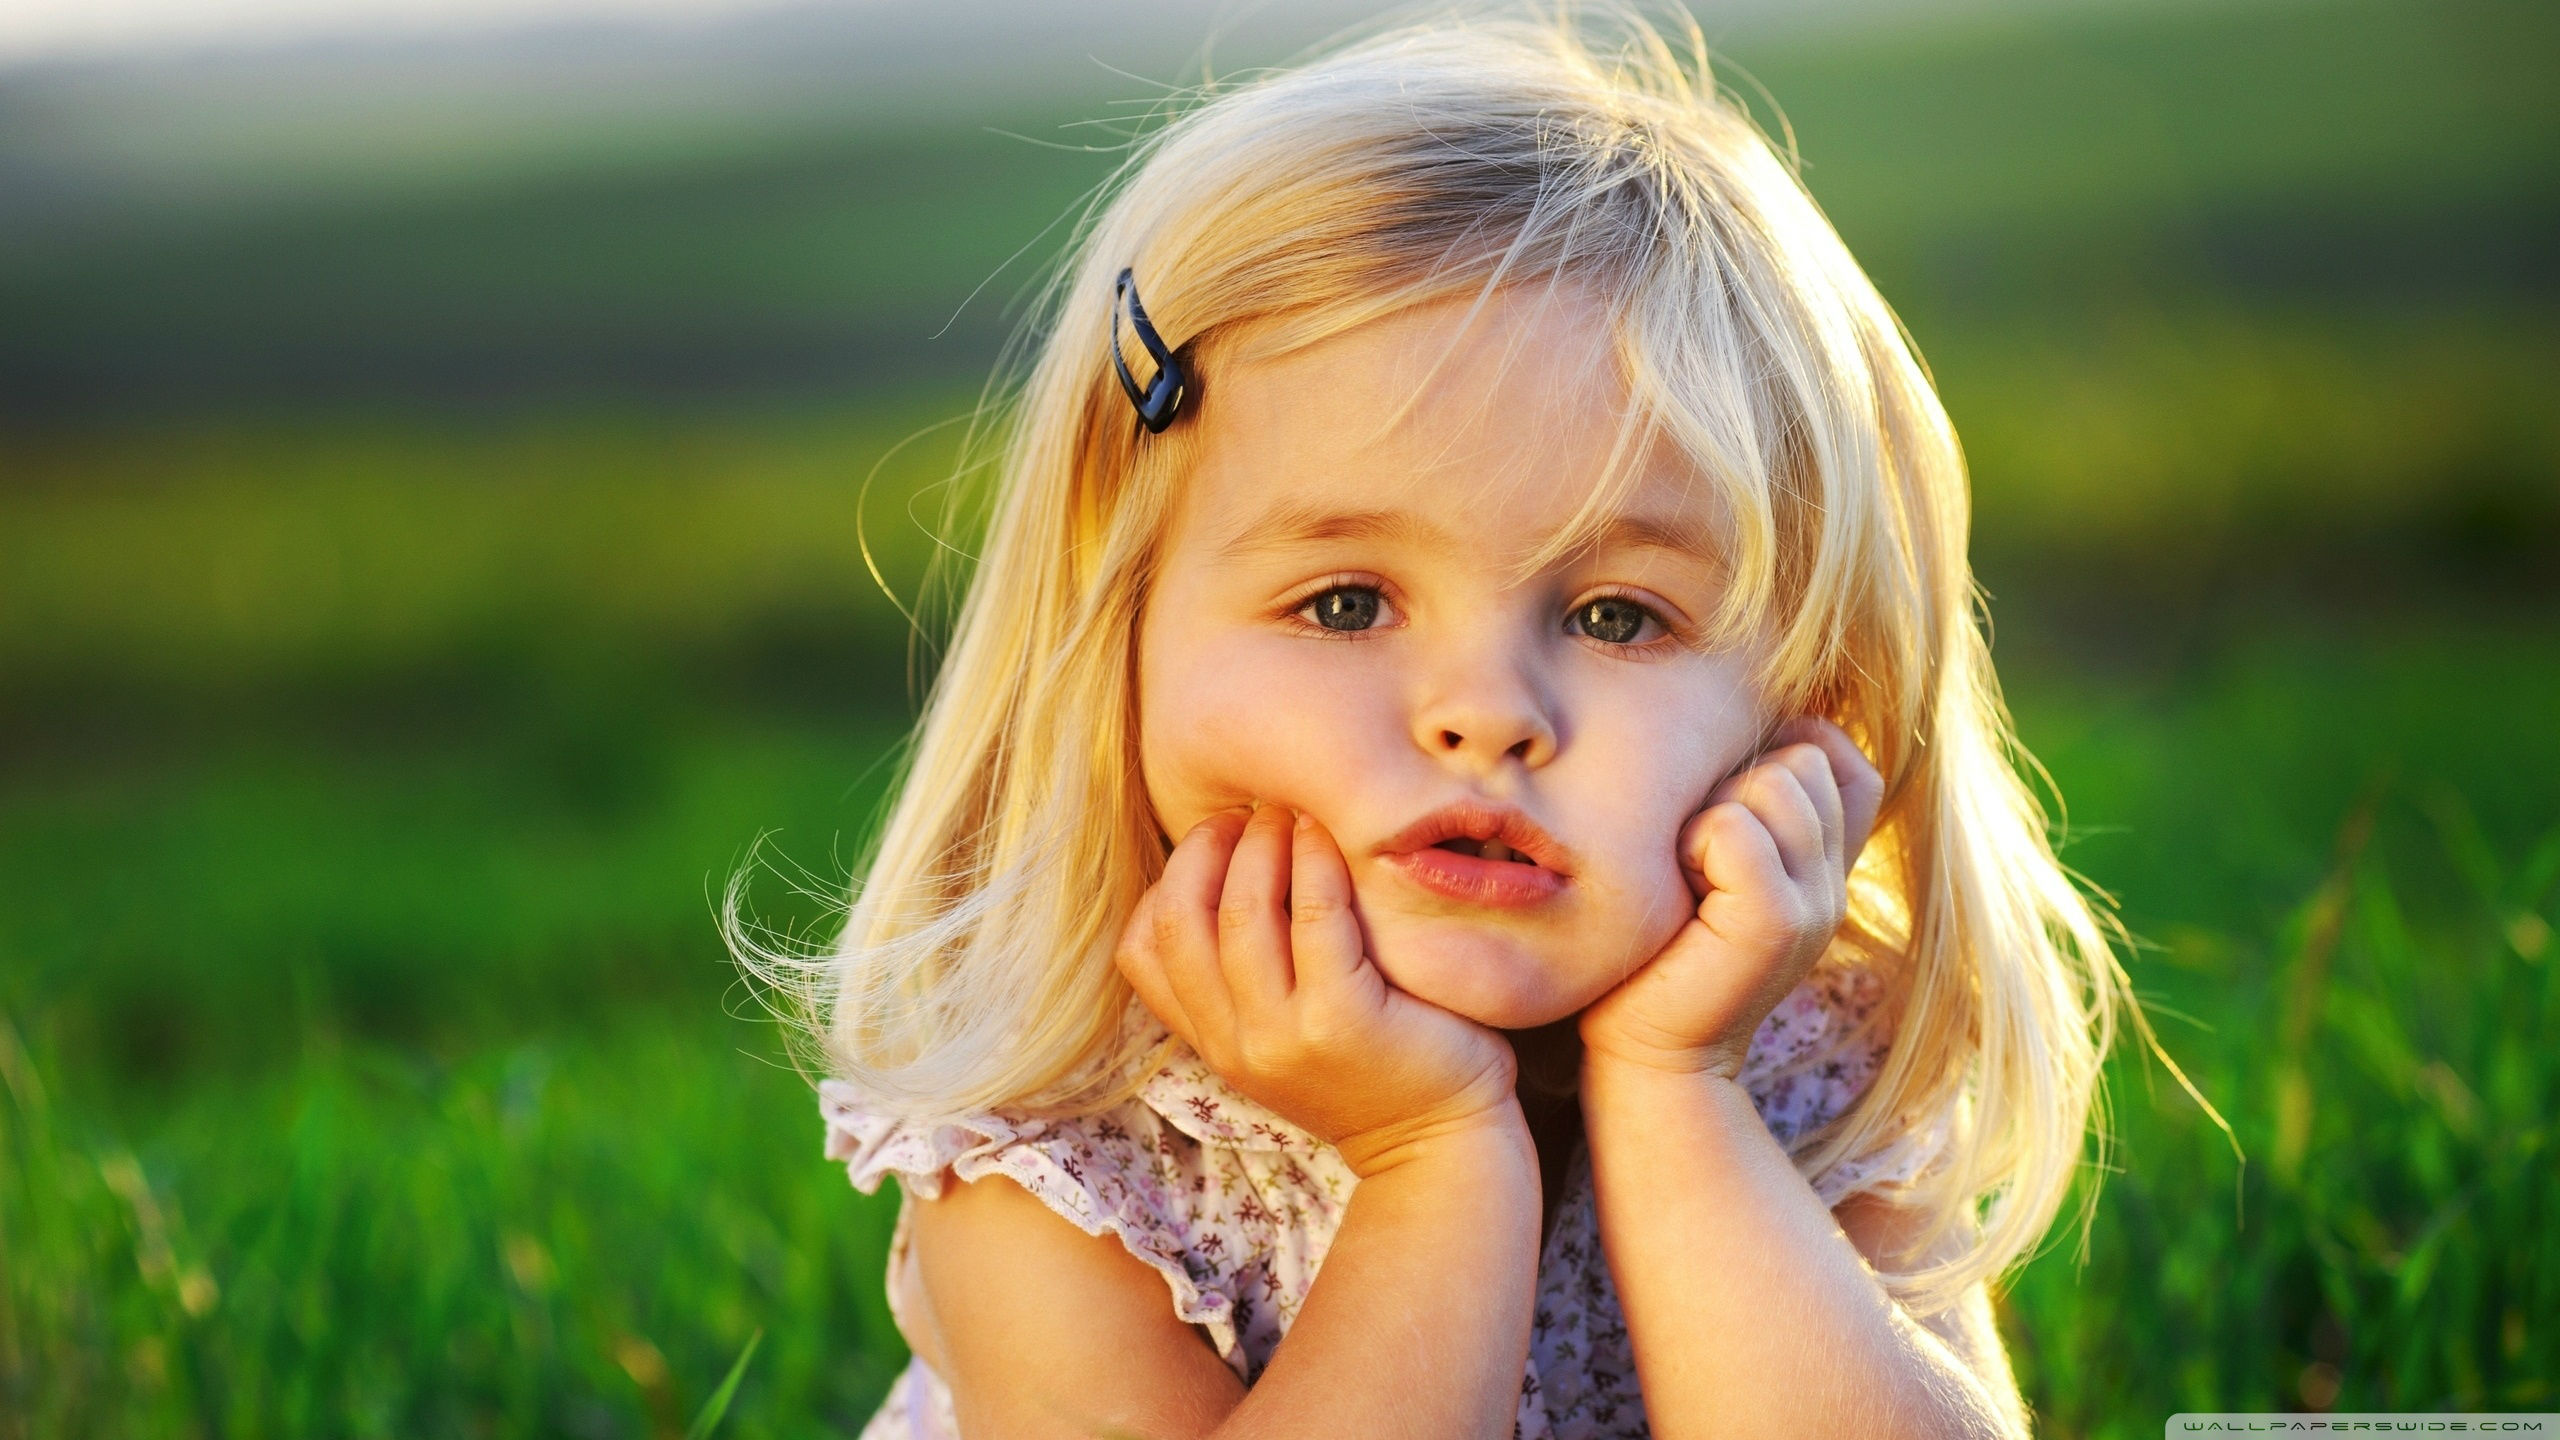 http://lounge.obviousmag.org/lady_day/2015/03/07/imagens/cute_baby_girl-wallpaper-2560x1440.jpg